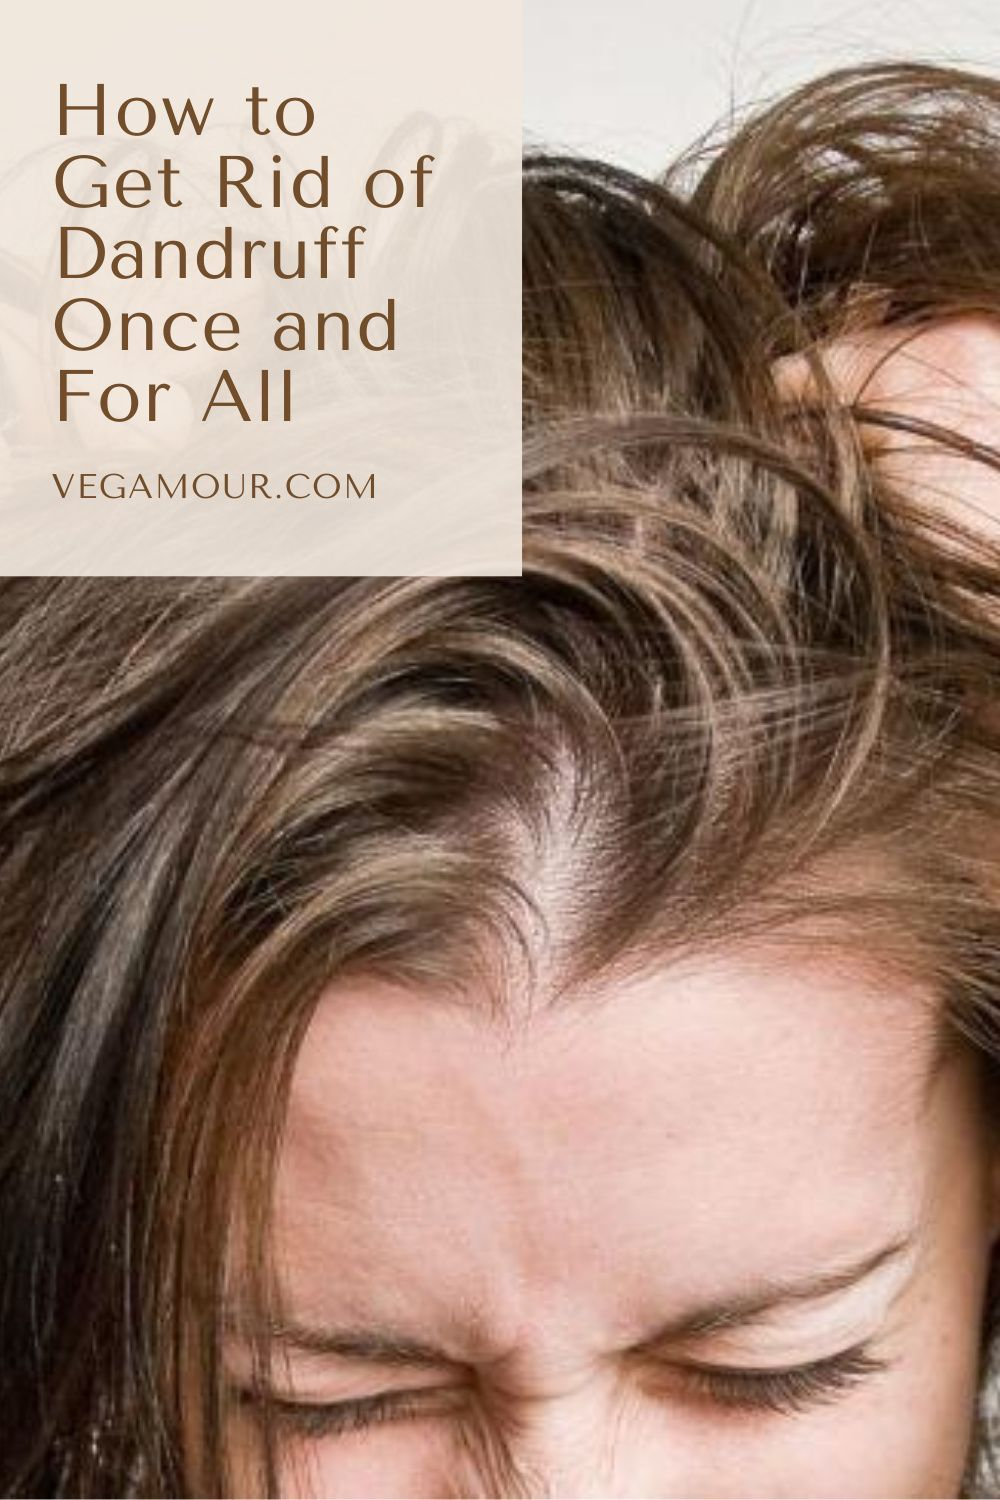 How To Get Rid Of Dandruff Once And For All In 2020 Getting Rid Of Dandruff Dandruff How To Get Rid